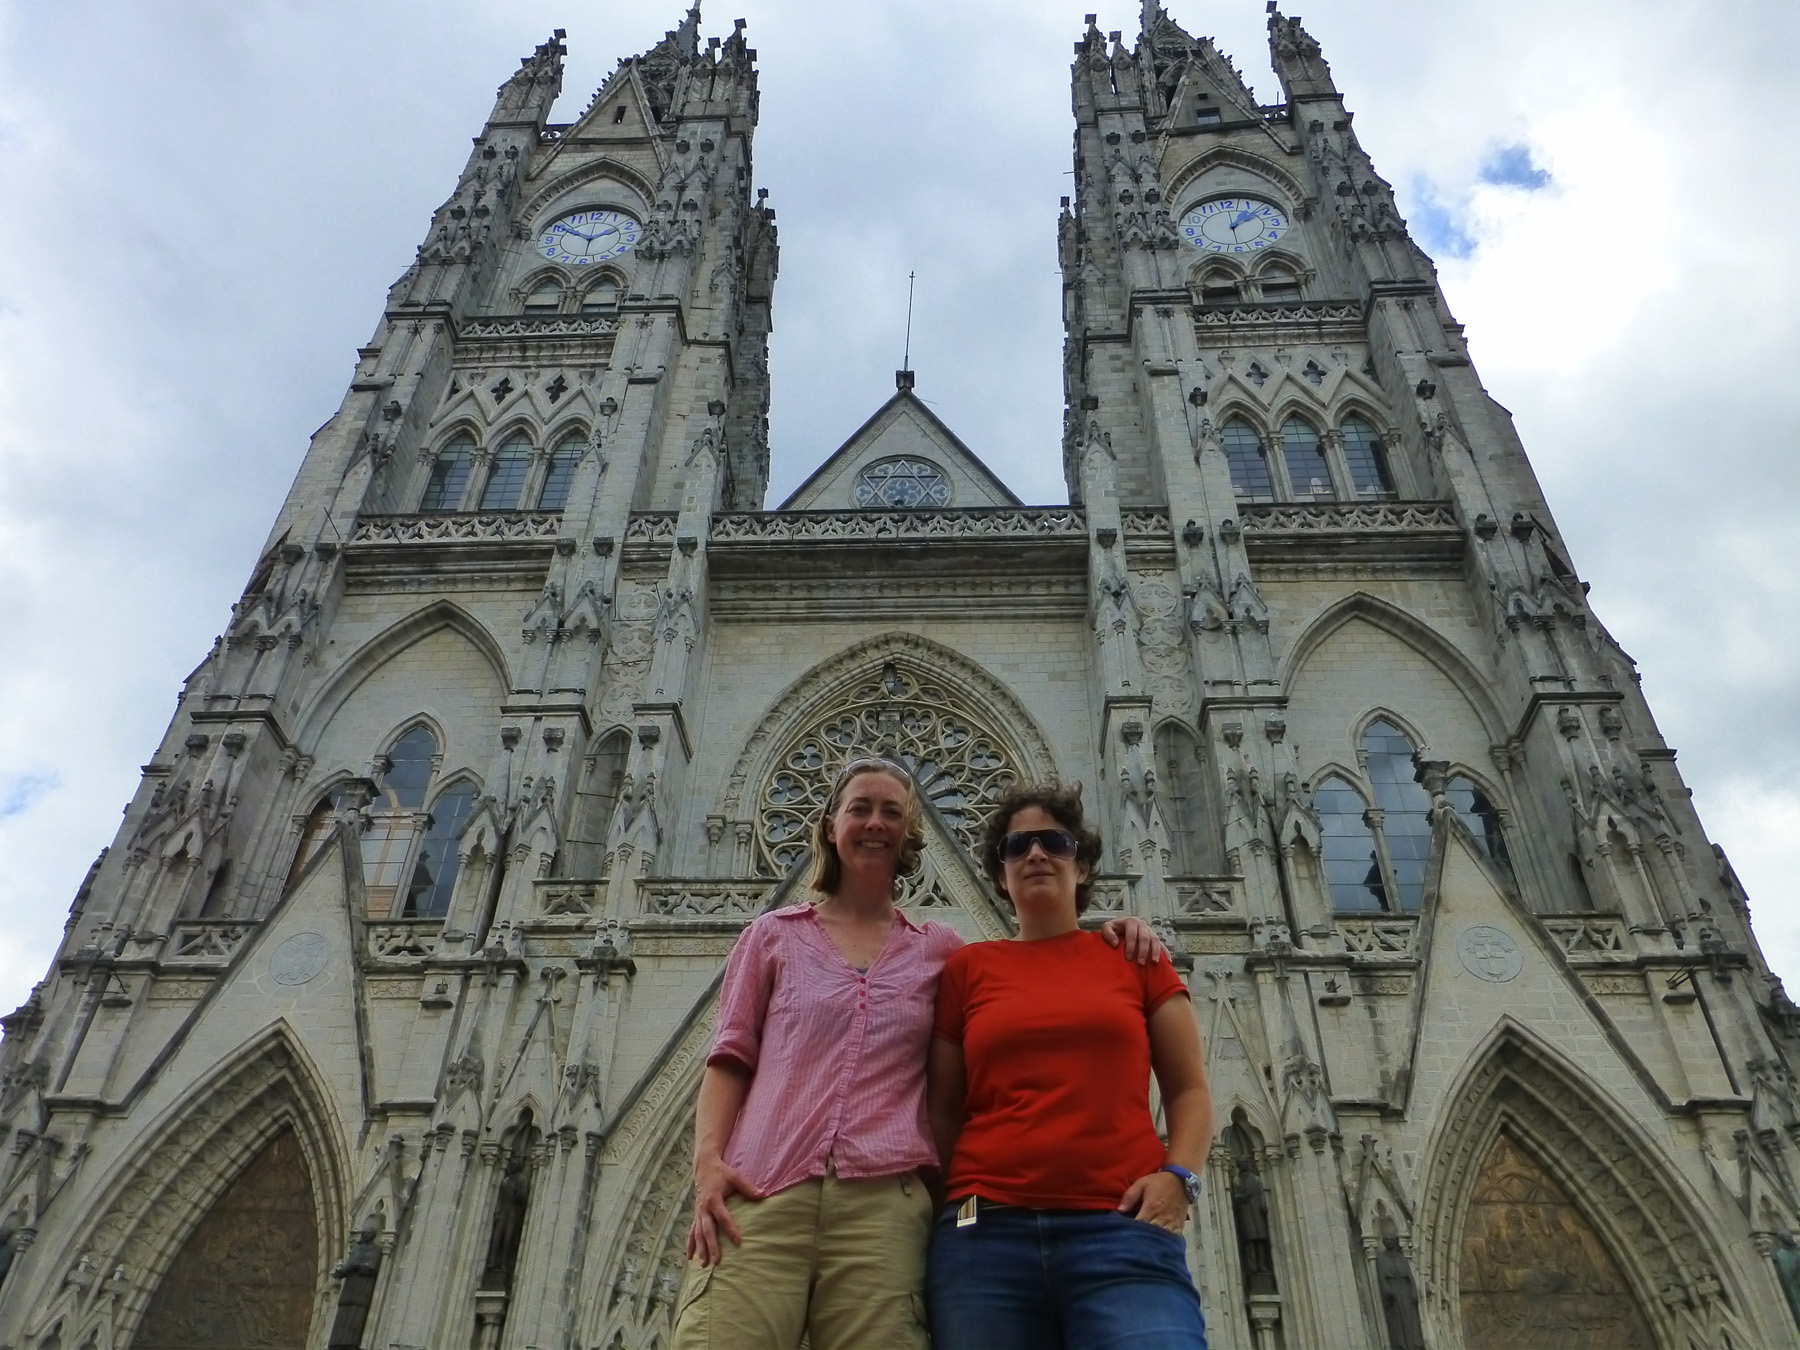 The Basílica del Voto Nacional. The tallest church in Ecuador, the Basílica is a neo-Gothic style church that rivals the Notre Dame in architecture. It's my favorite place in Quito.